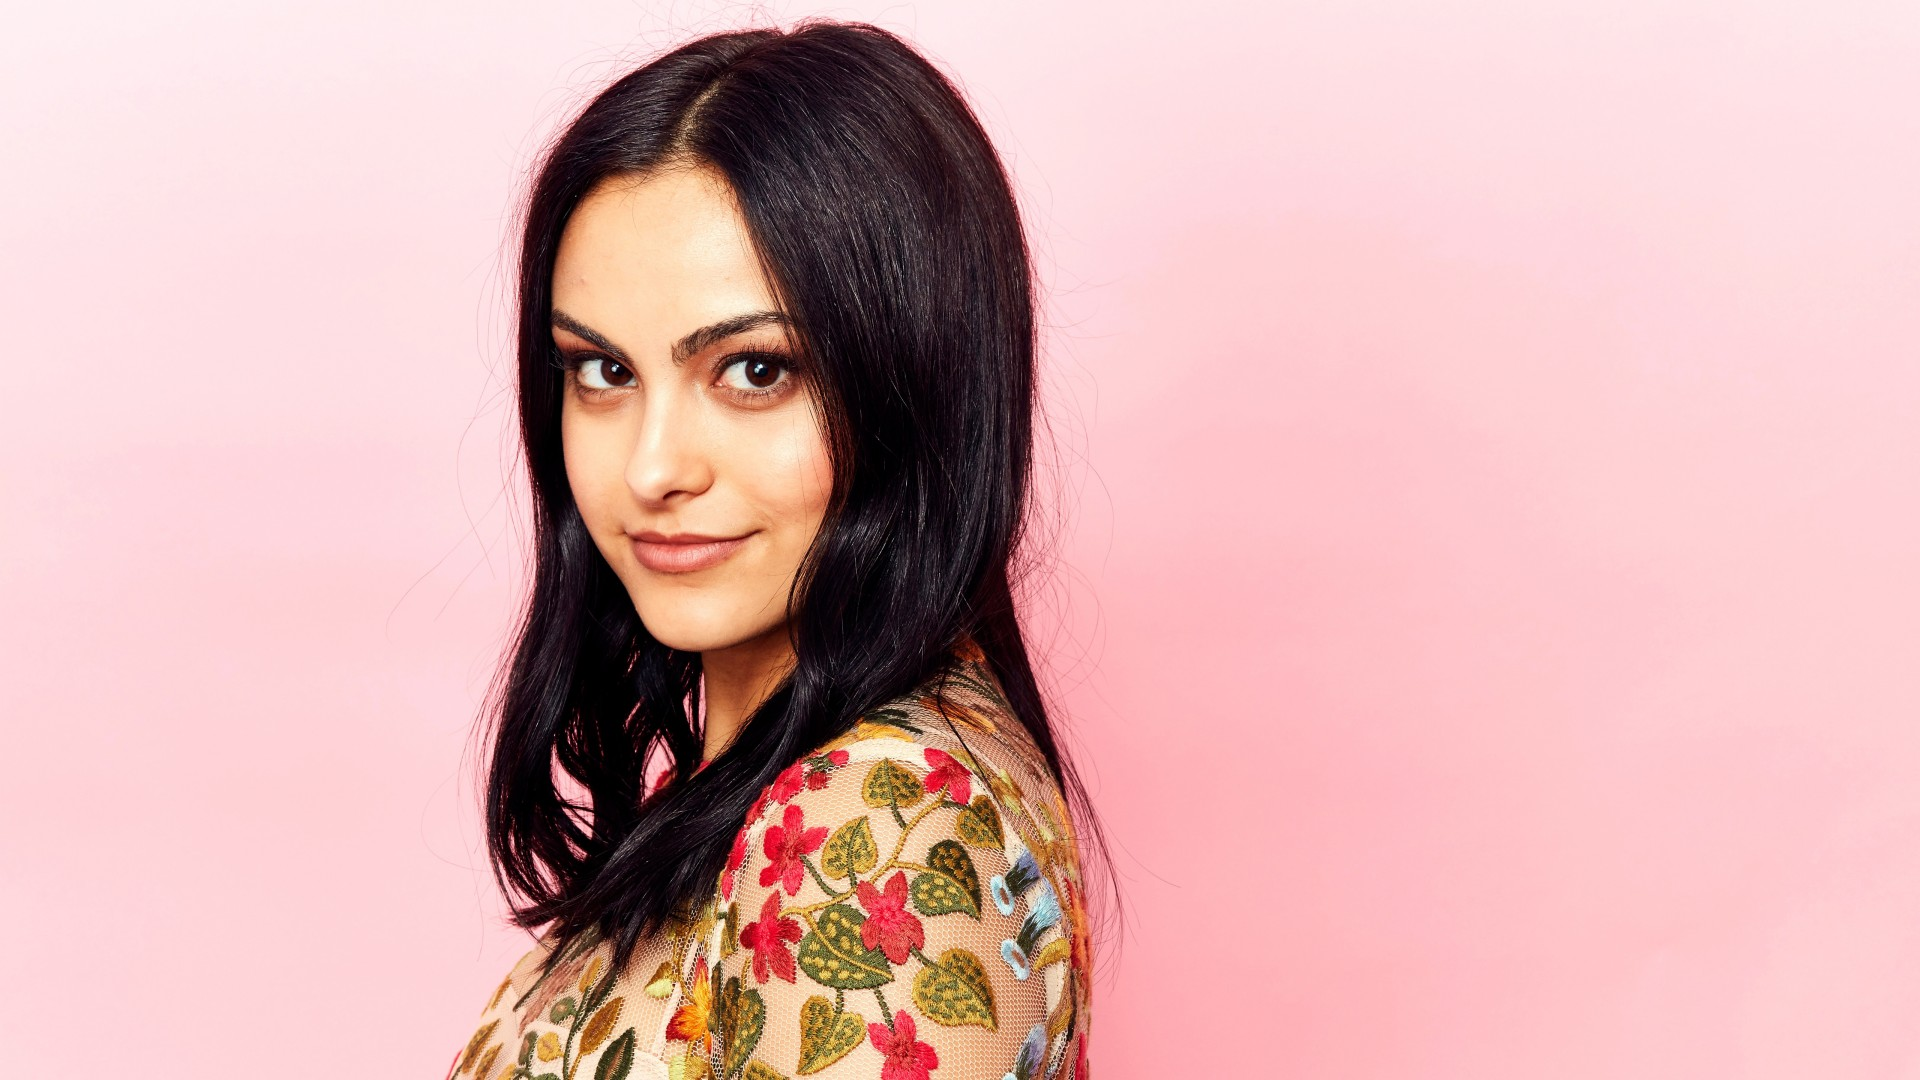 Fantasy Girl Wallpaper Full Hd Camila Mendes 4k Wallpapers Hd Wallpapers Id 21940